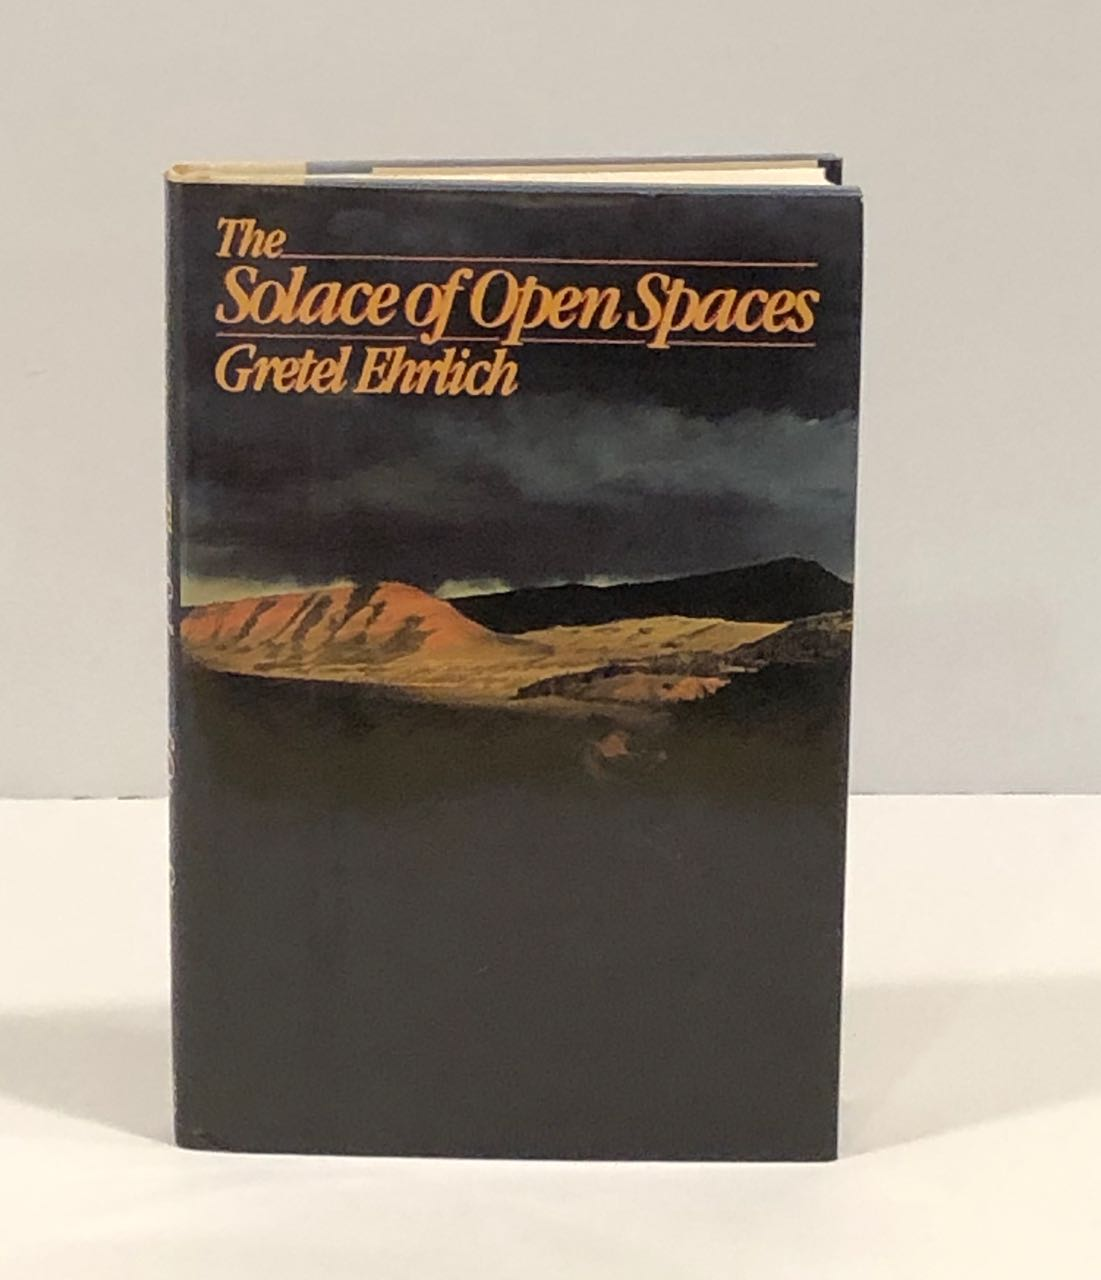 Image for The Solace of Open Spaces